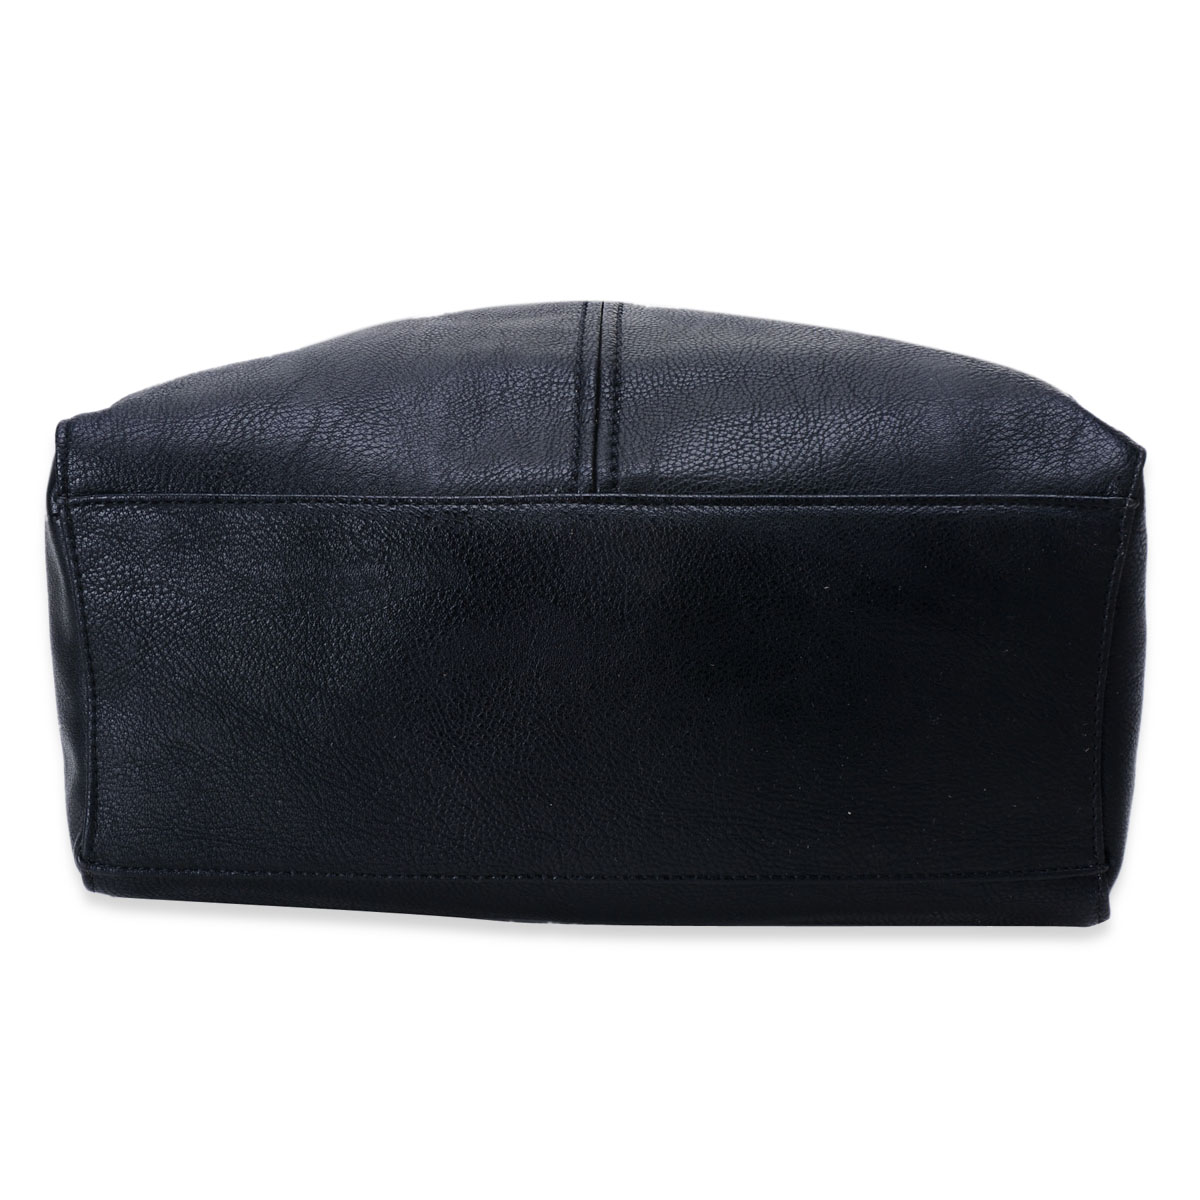 Black Faux Leather Shoulder Bag (12x5x12 in)